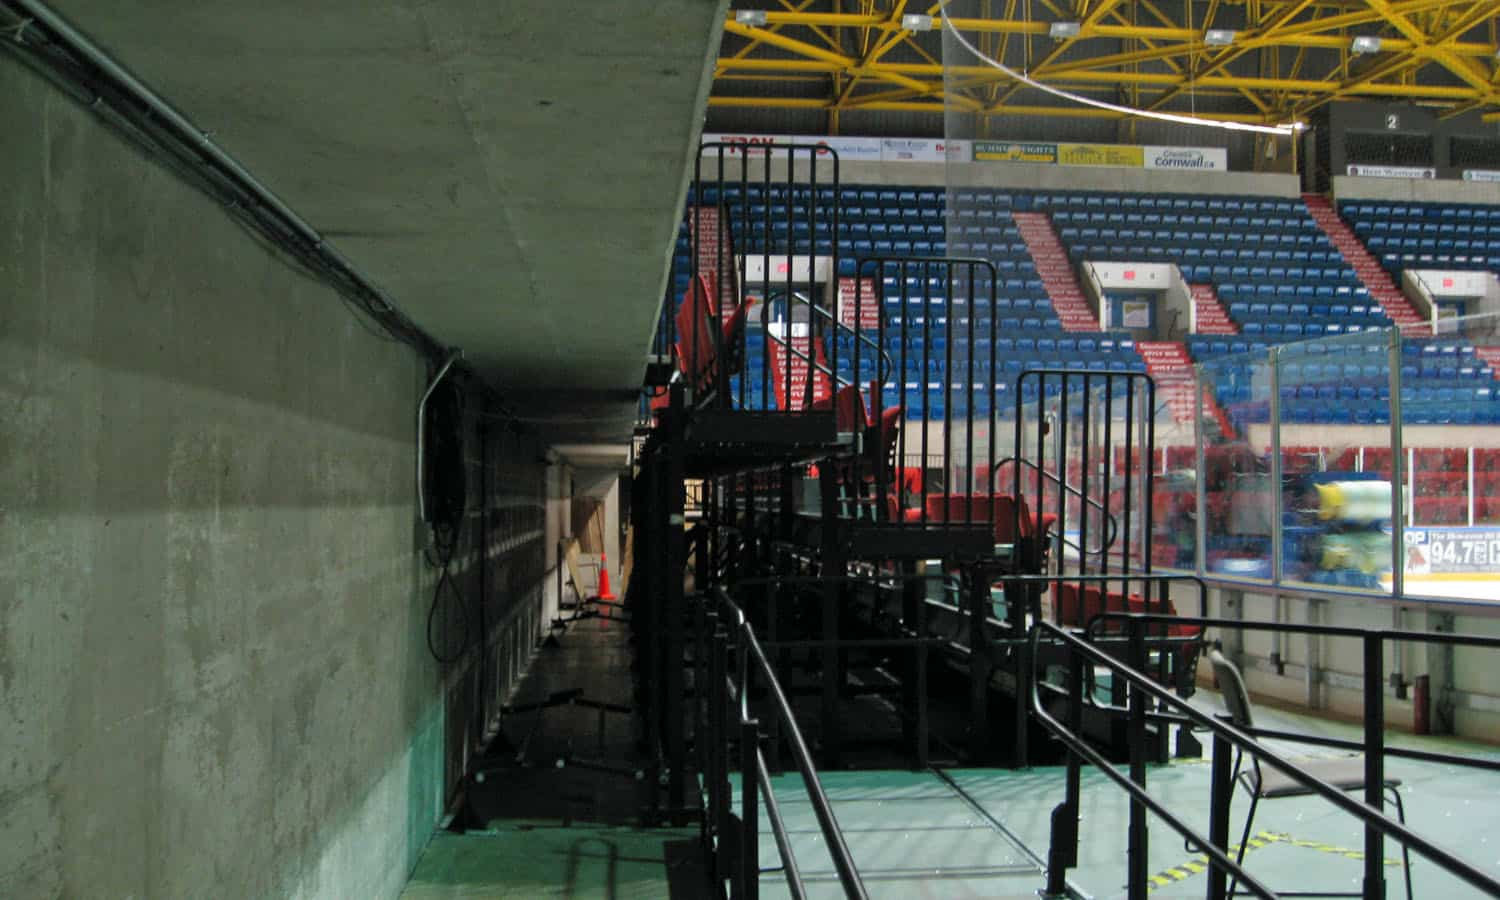 Detail of the moat seating showing the space between the ice surface and the main seating